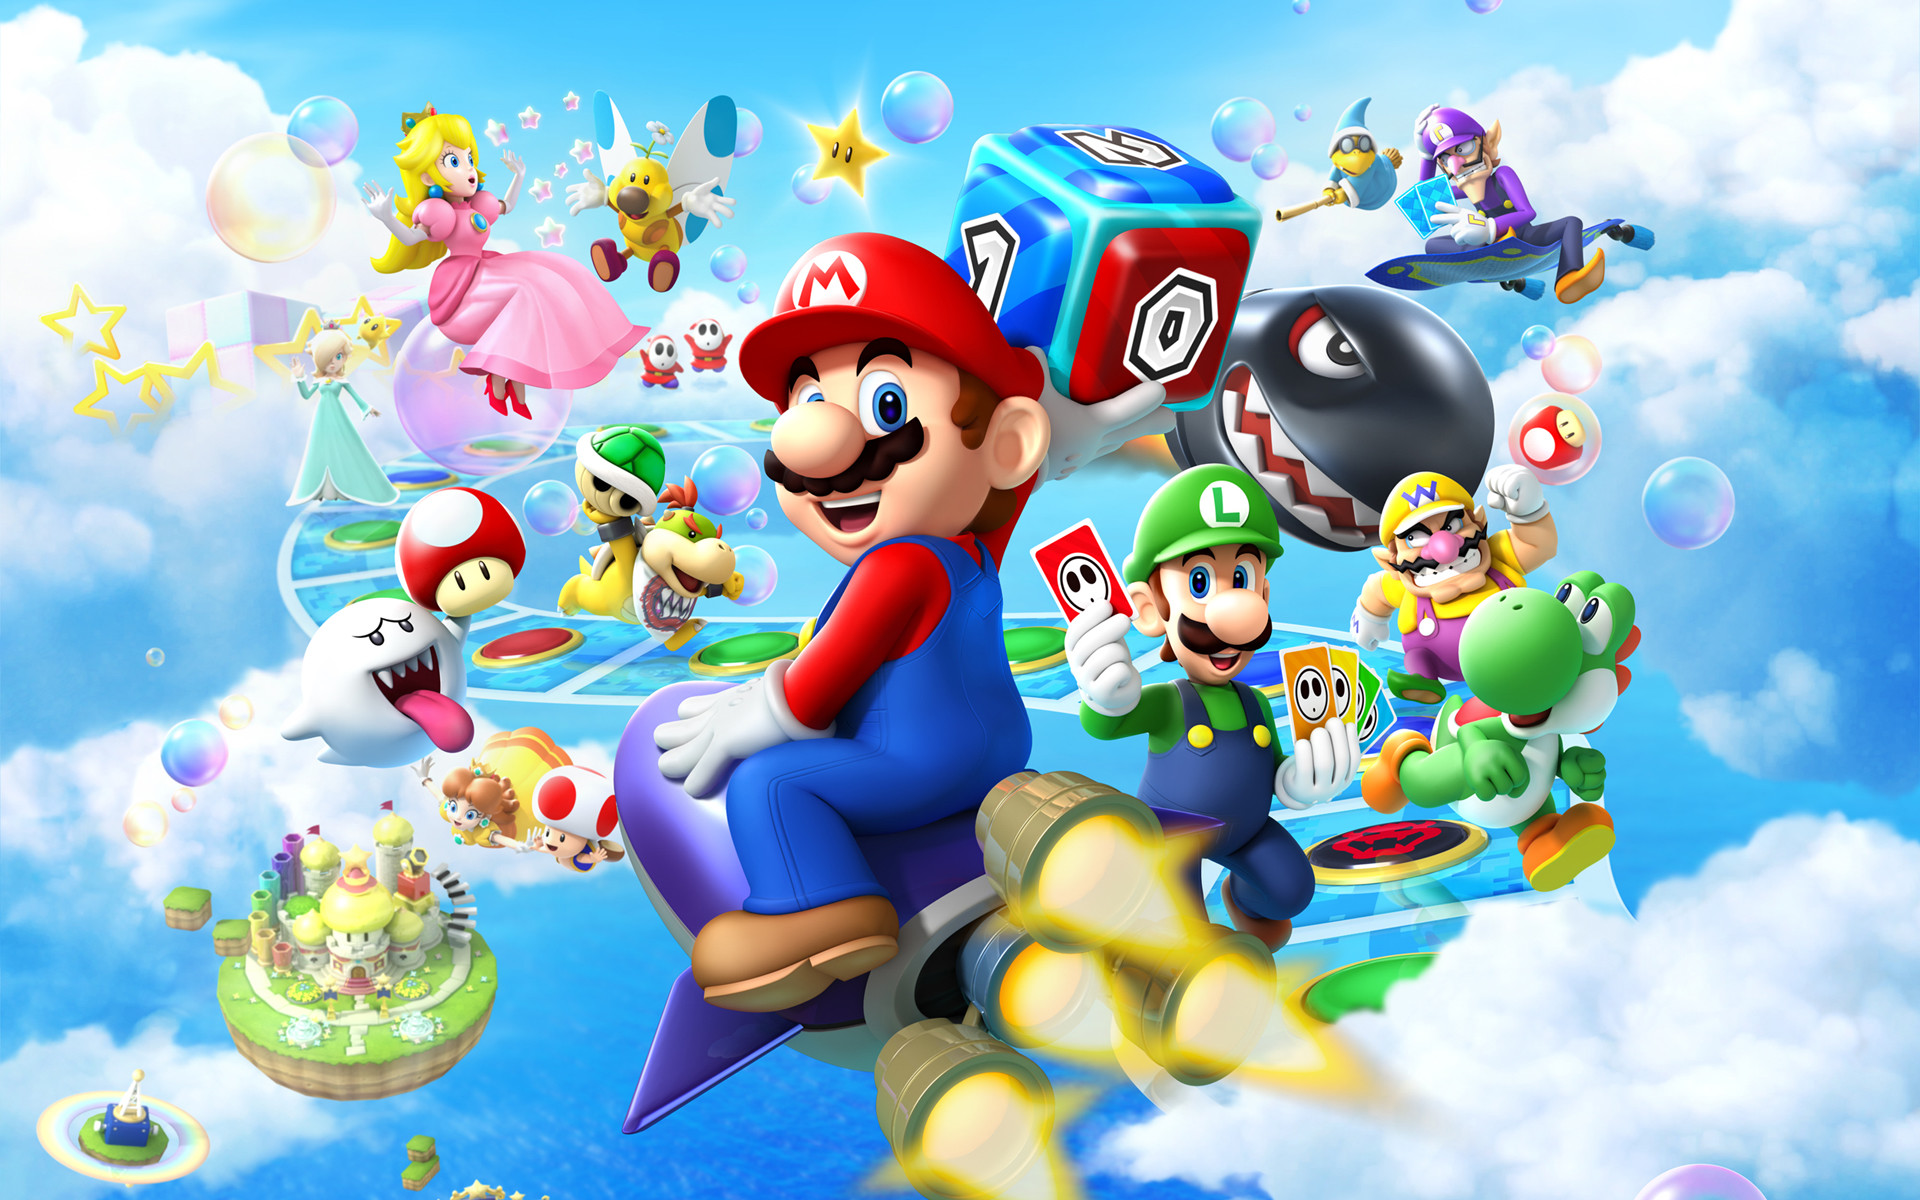 Cool Mario Backgrounds 72 Images HD Wallpapers Download Free Images Wallpaper [1000image.com]